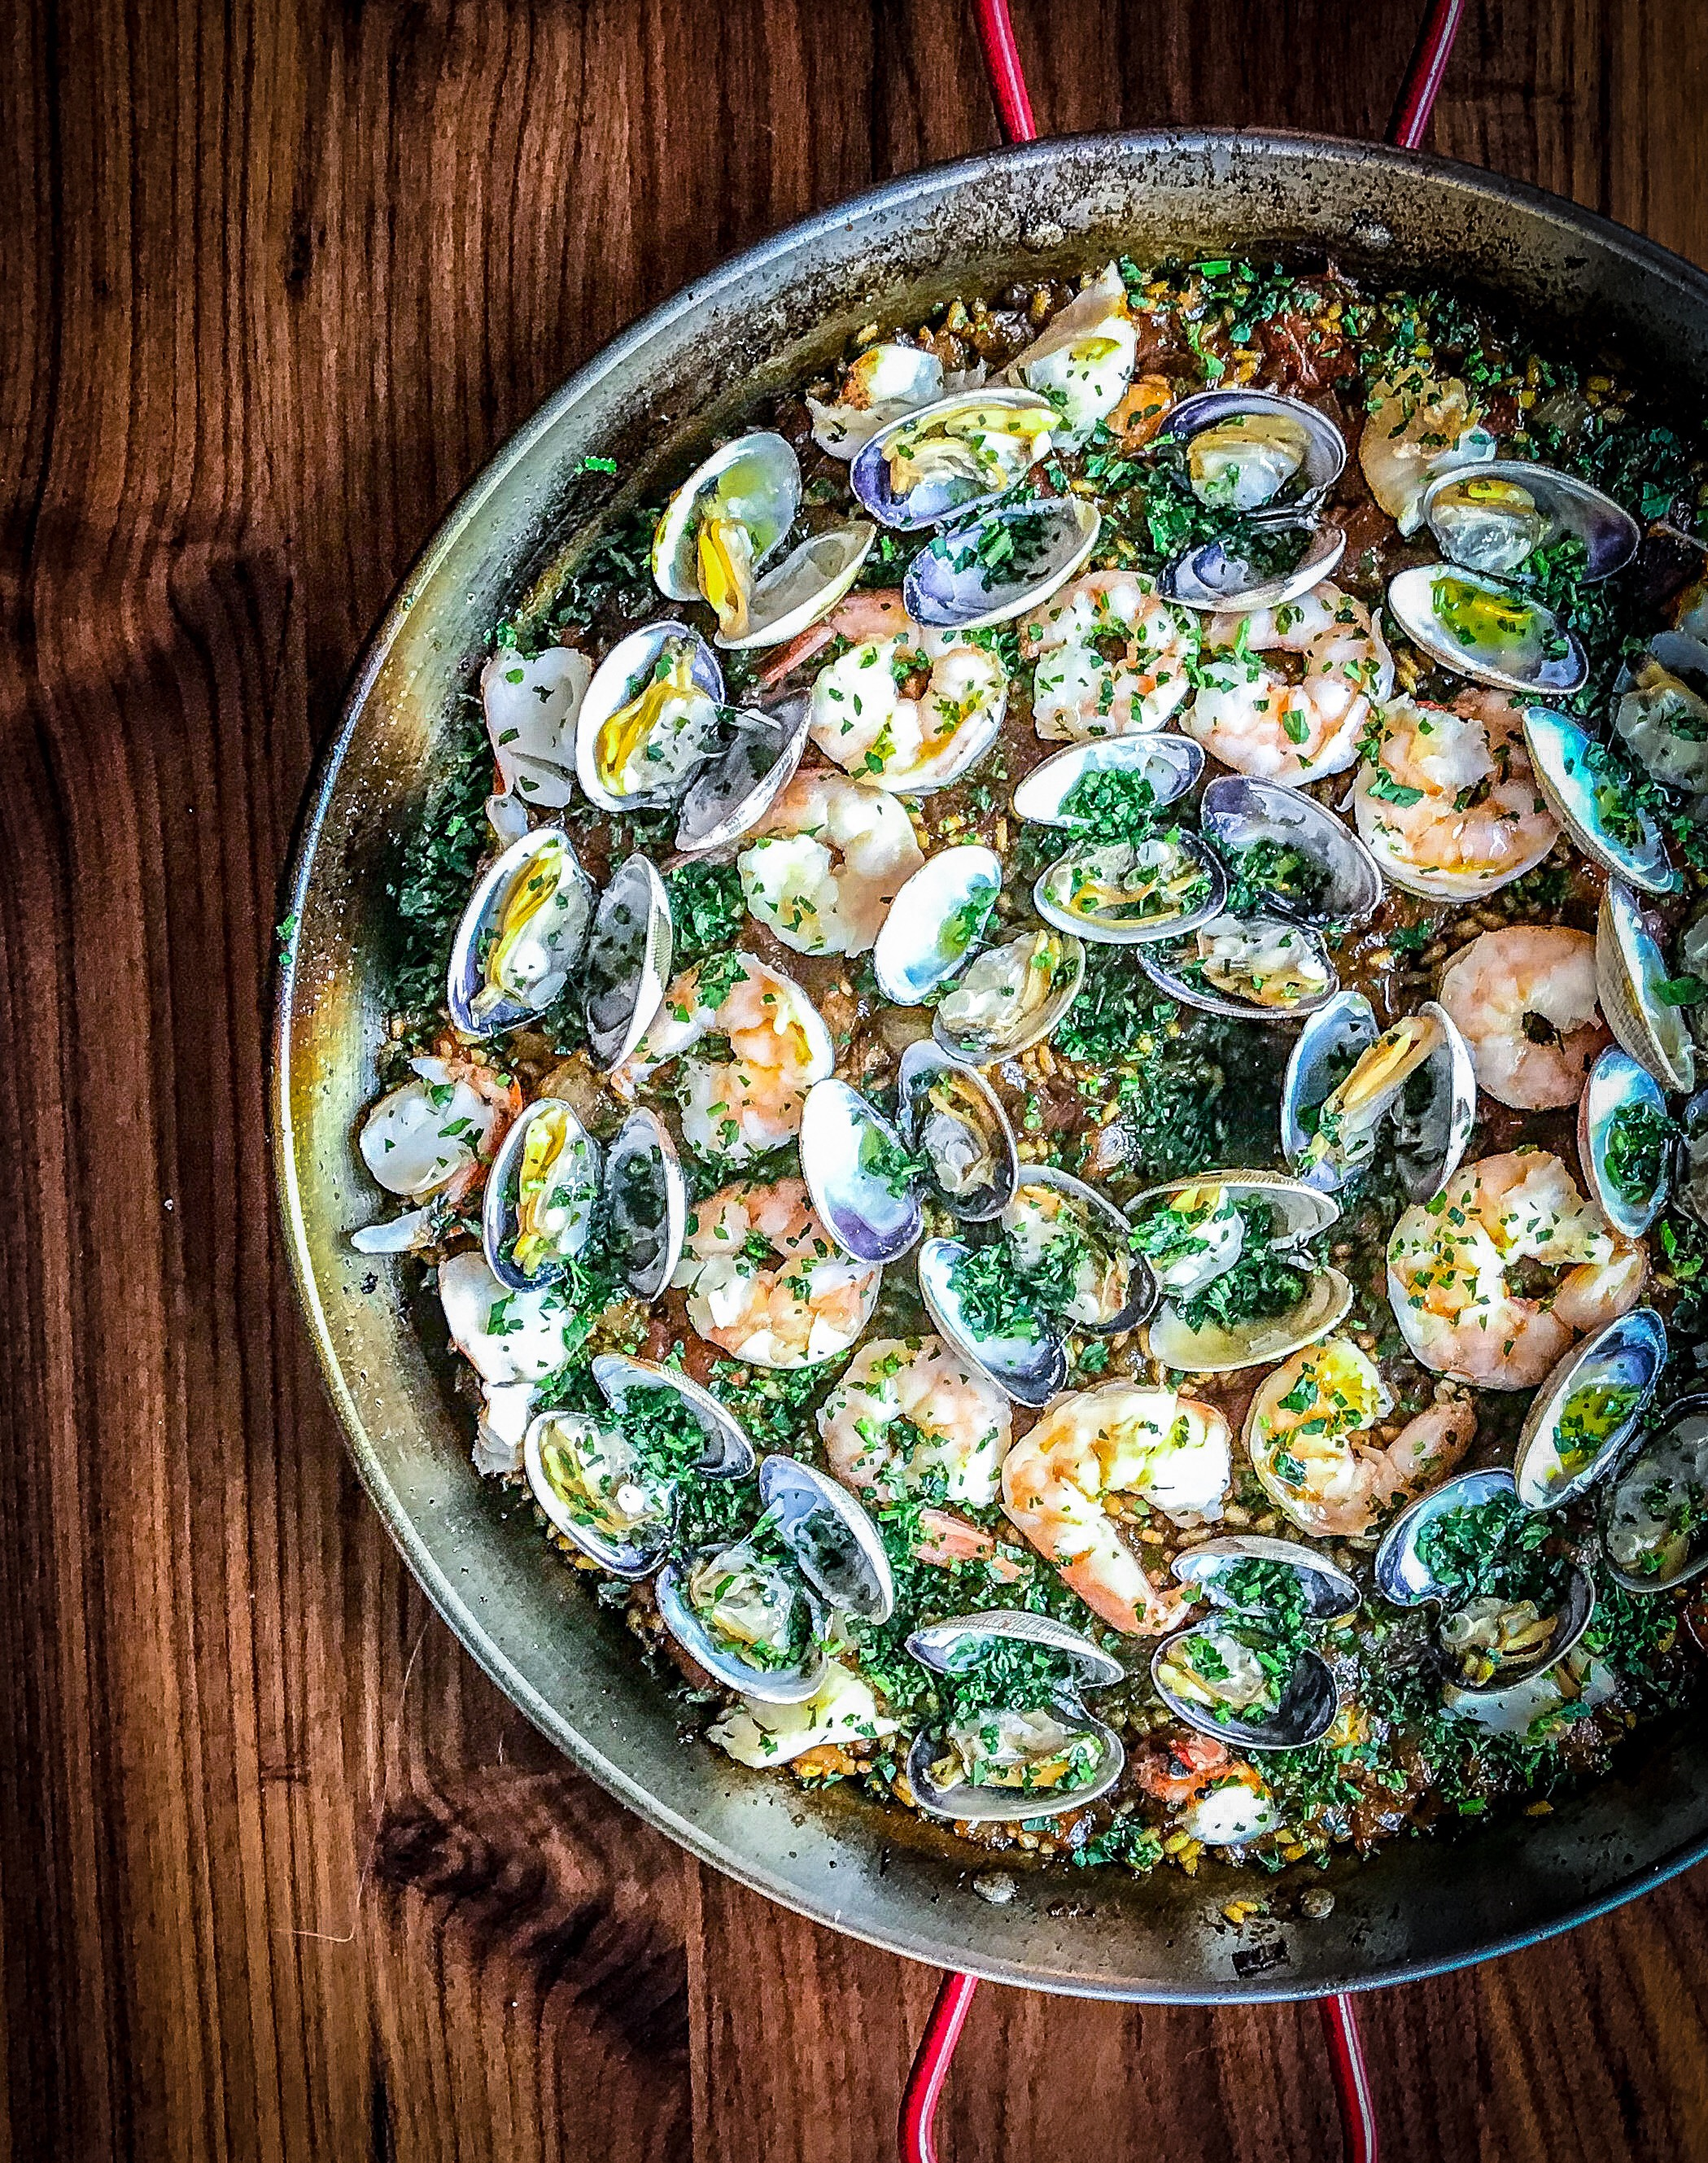 How To Make Seafood Paella: A Guide With Videos And Photos